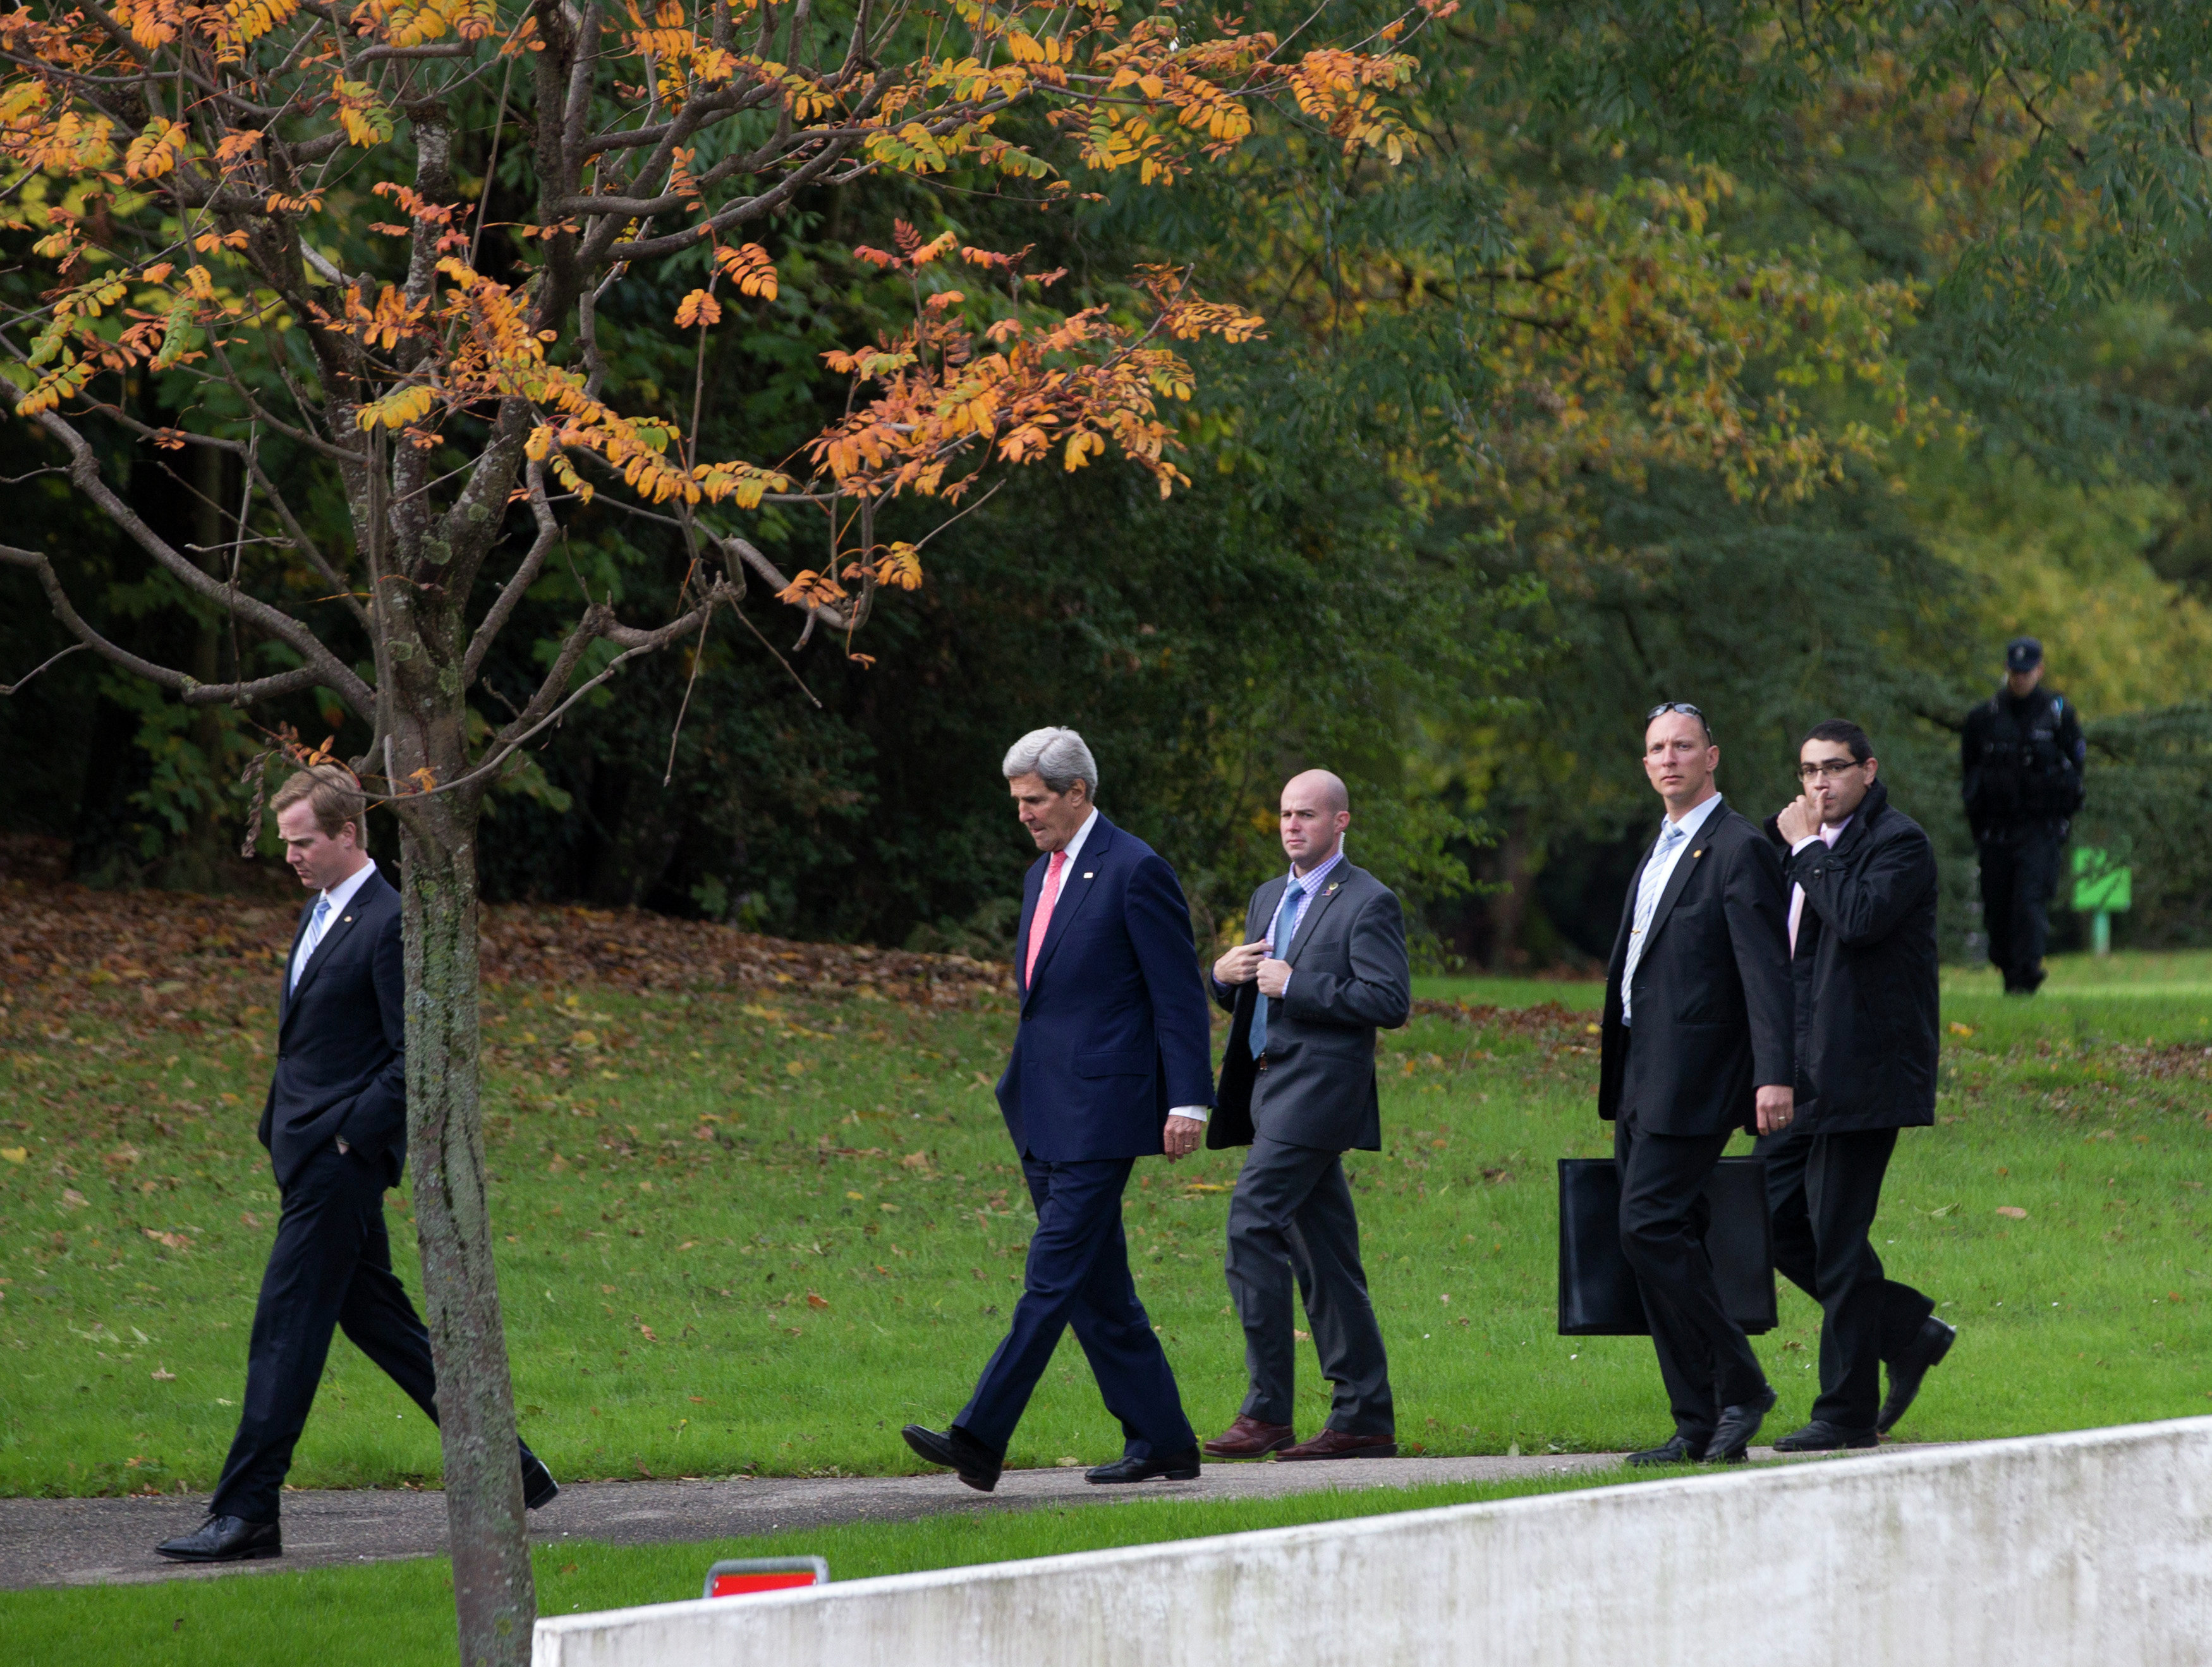 U.S. Secretary of State John Kerry, second left, walks in the grounds of the Intercontinental Hotel in Geneva, Switzerland, before a meeting with EU High Representative for Foreign Affairs, Catherine Ashton and Iranian Foreign Minister Mohammad Javad Zarif, Saturday Nov. 9, 2013.